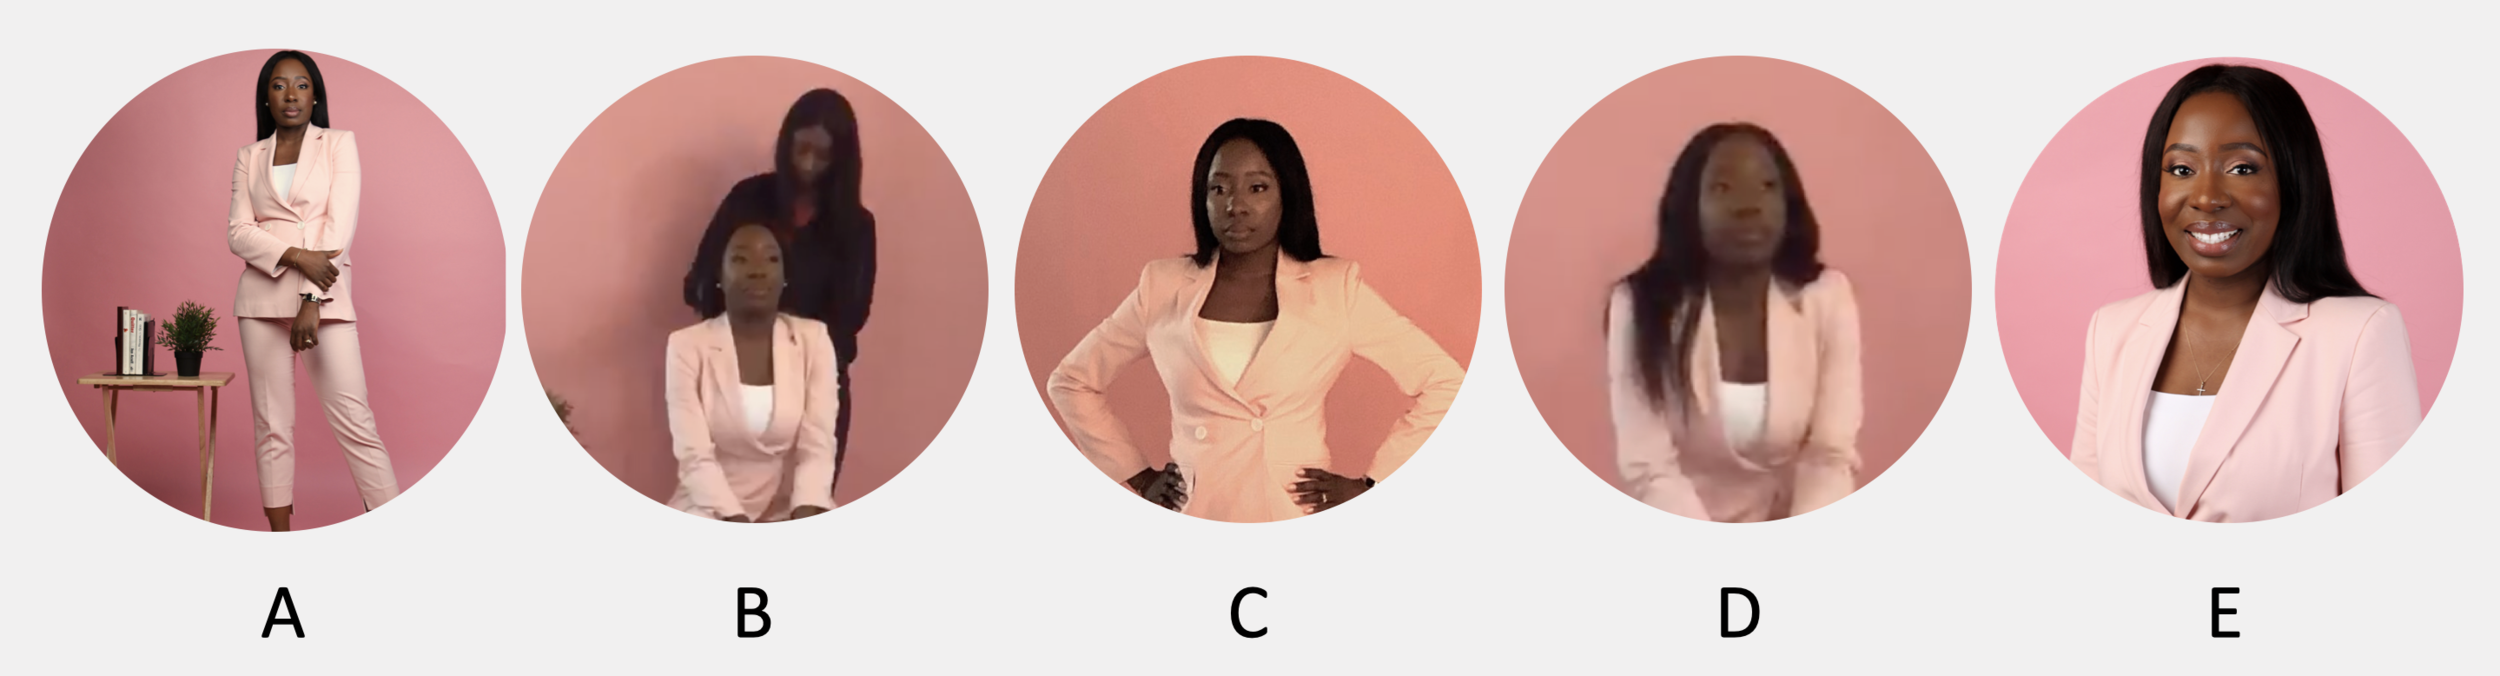 Which picture is best suited for a LinkedIn profile picture?